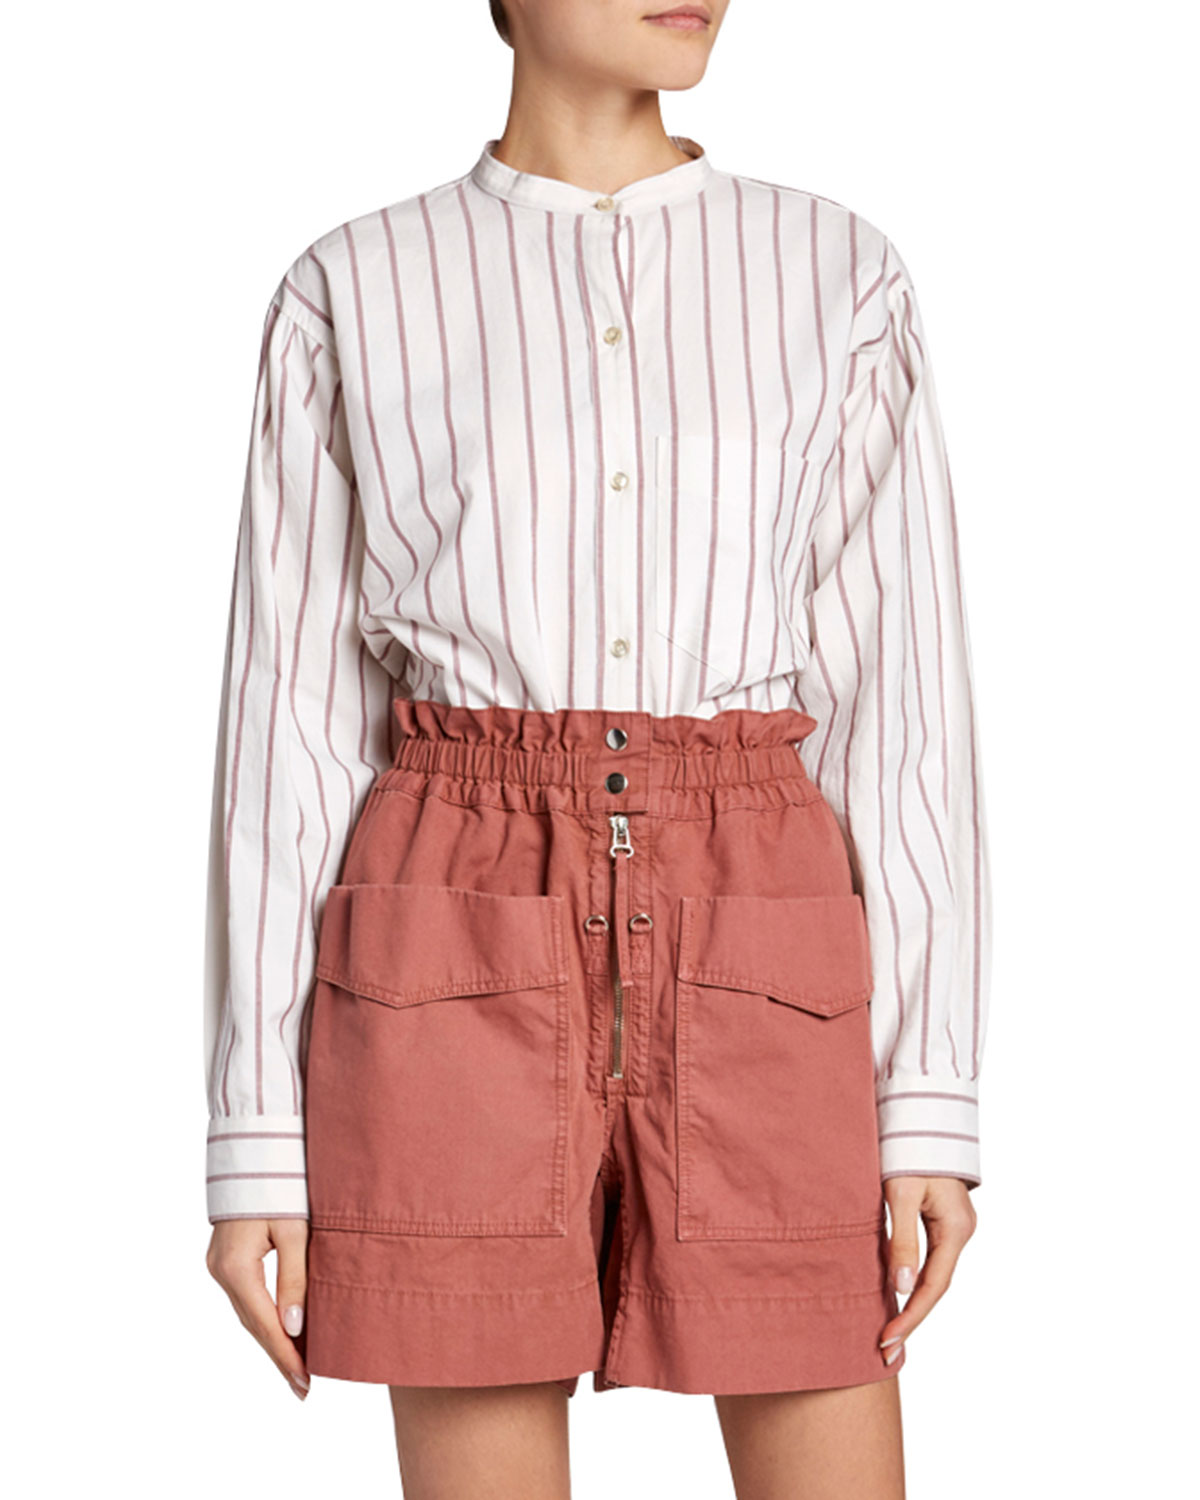 Etoile Isabel Marant Bags SATCHELL STRIPED BAND-COLLAR BUTTON-DOWN TOP